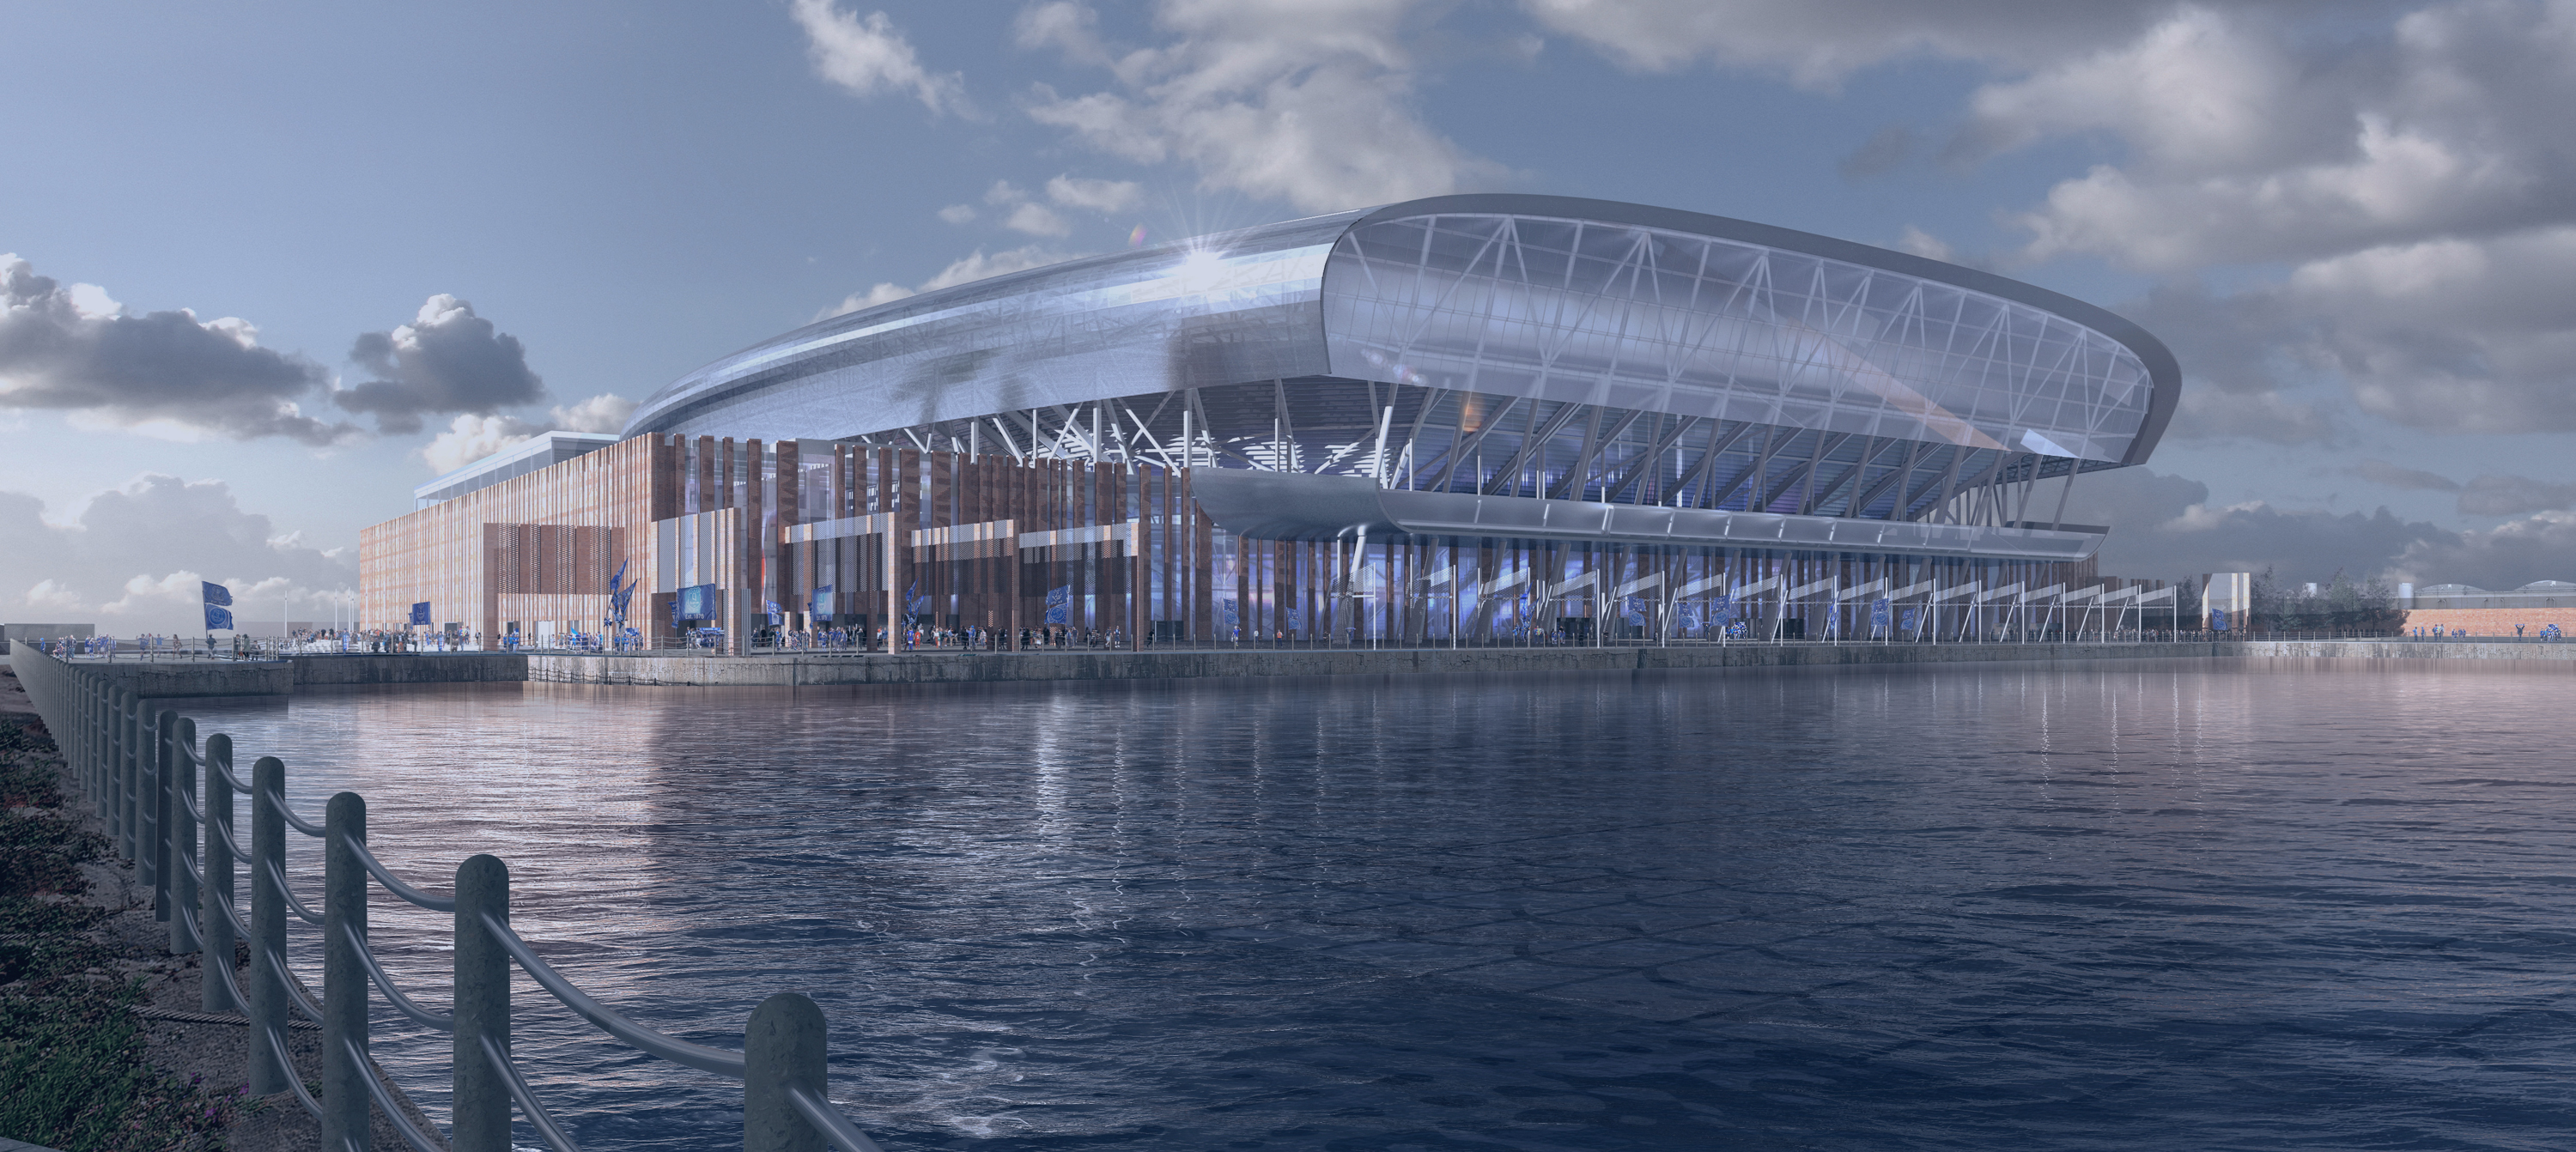 Everton Appoints Laing O Rourke To Deliver New Stadium